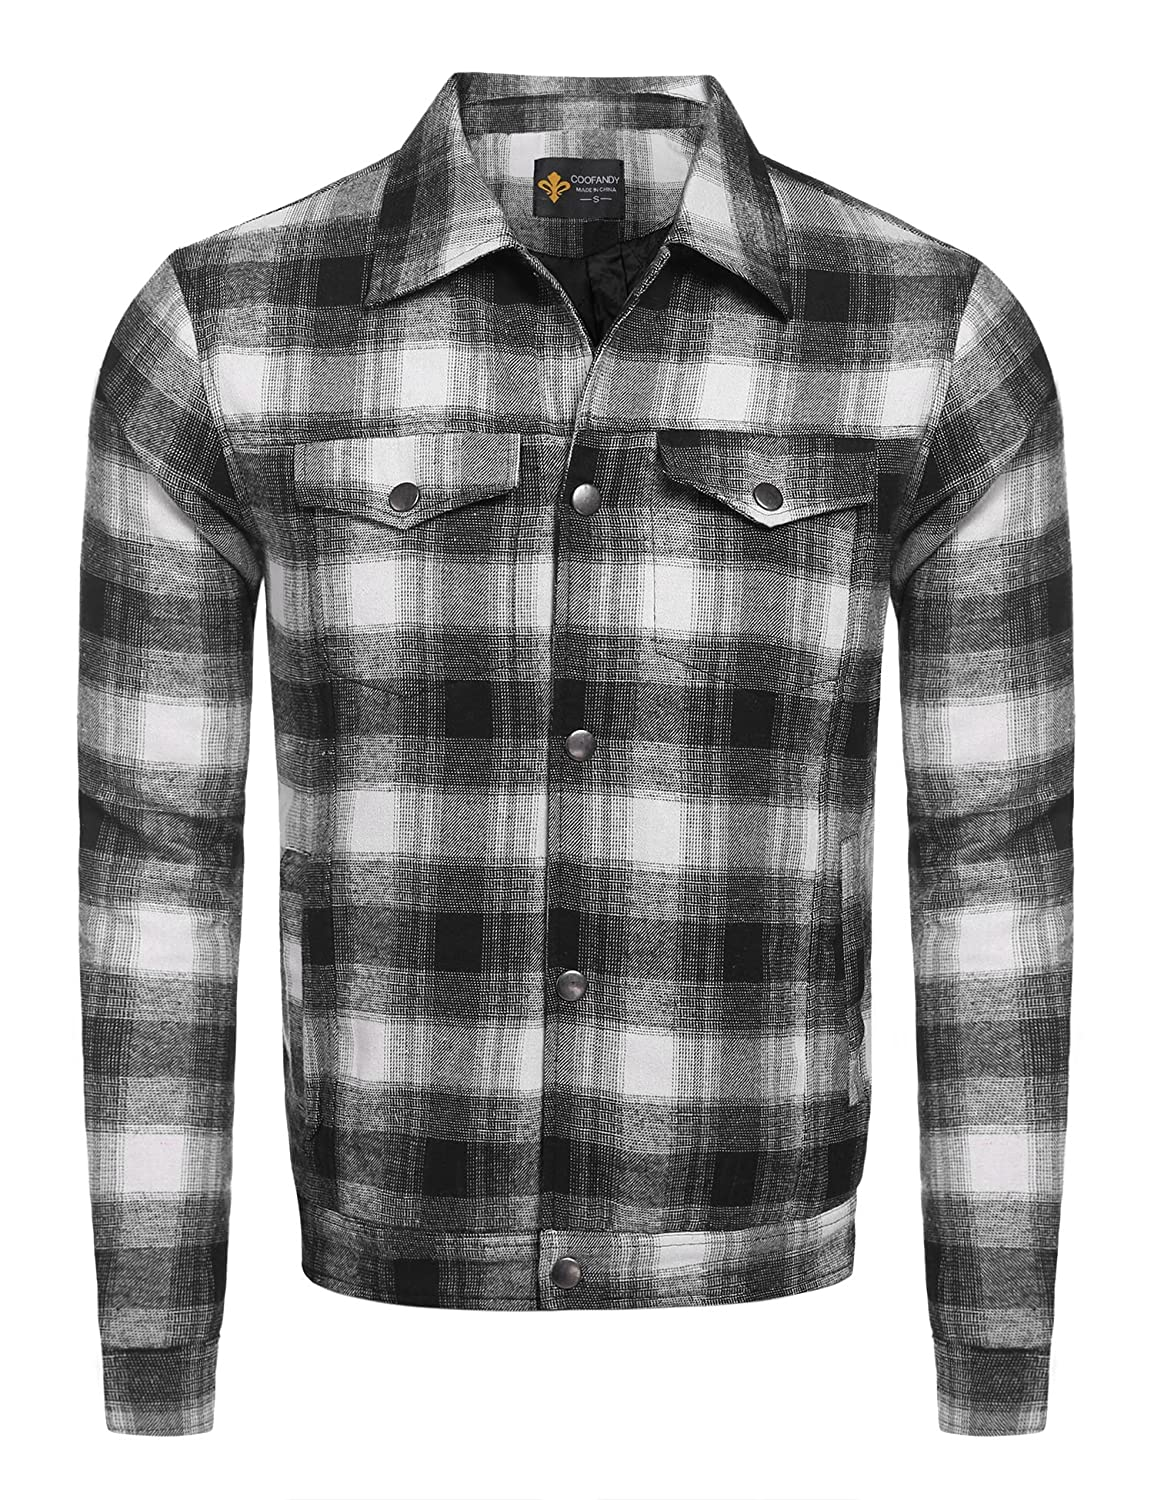 1ed0284cdcb 【STYLISH DESIGN】: This Western Lined Overshirt Jacket Is Made Of  Heavyweight Cotton Plaid.